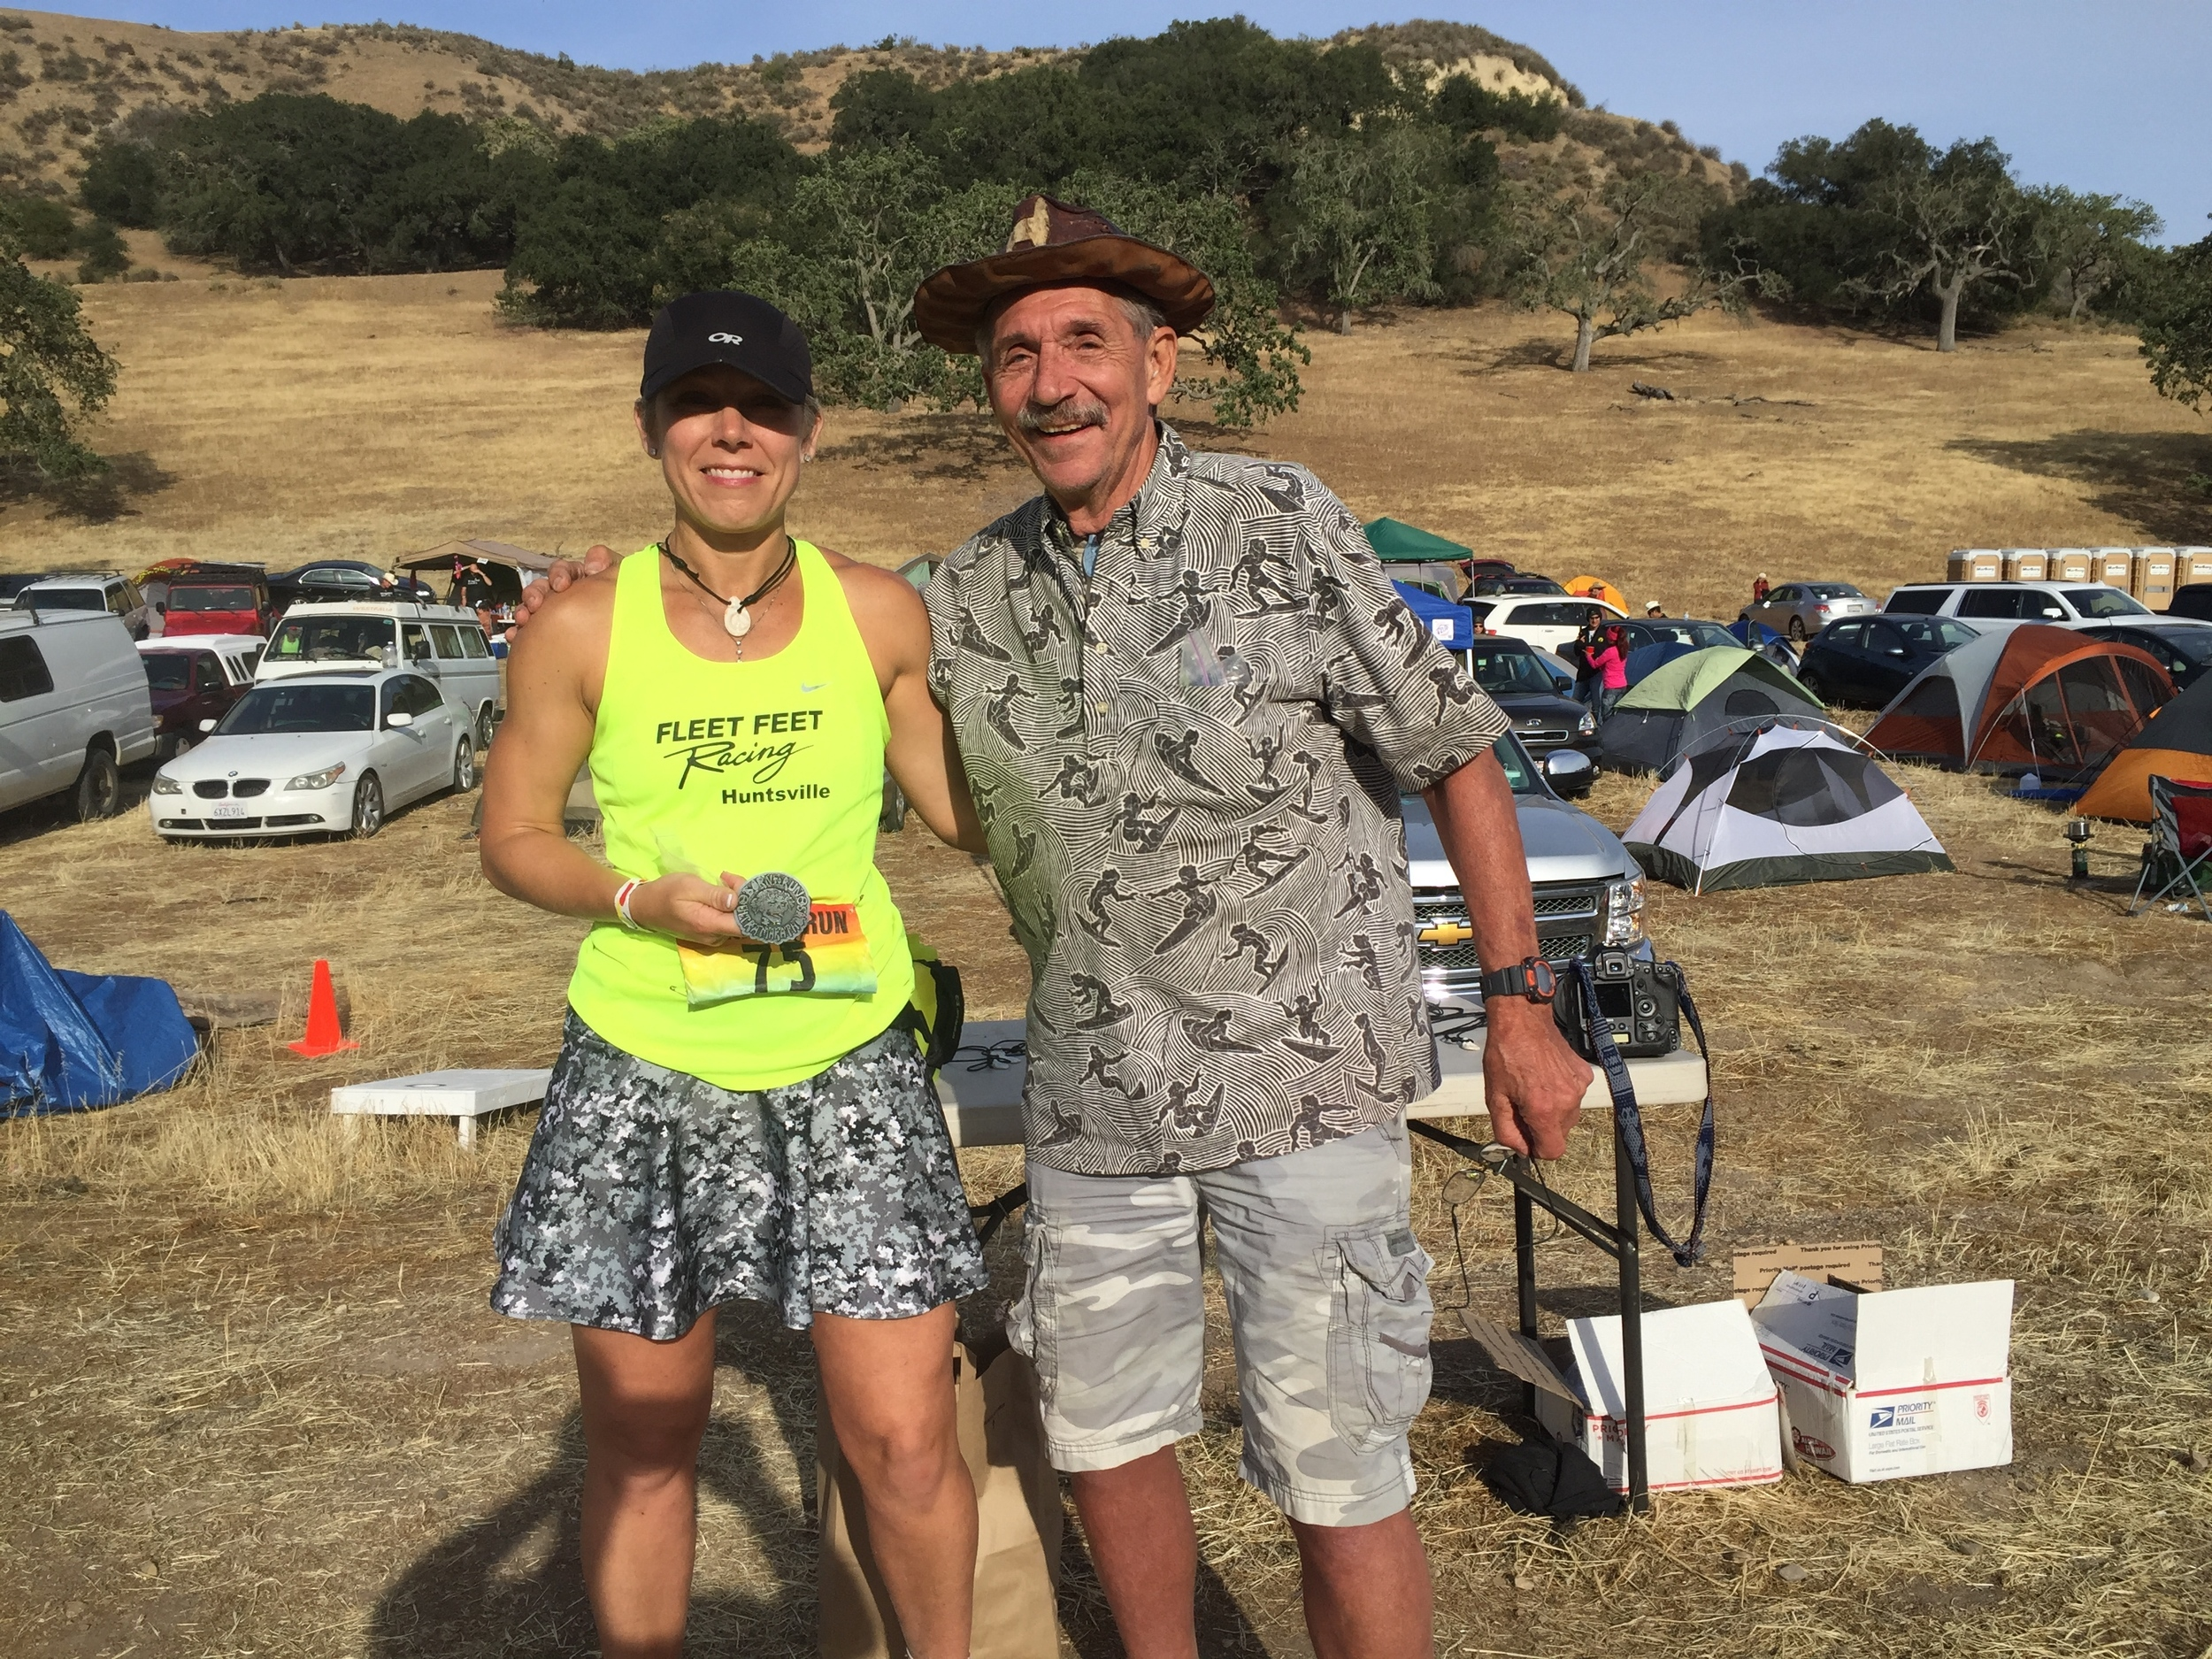 Each year, I try to find a 100-mile race that takes me to a new place and offers up a challenge. In 2015, it was the Born to Run 100 in California.